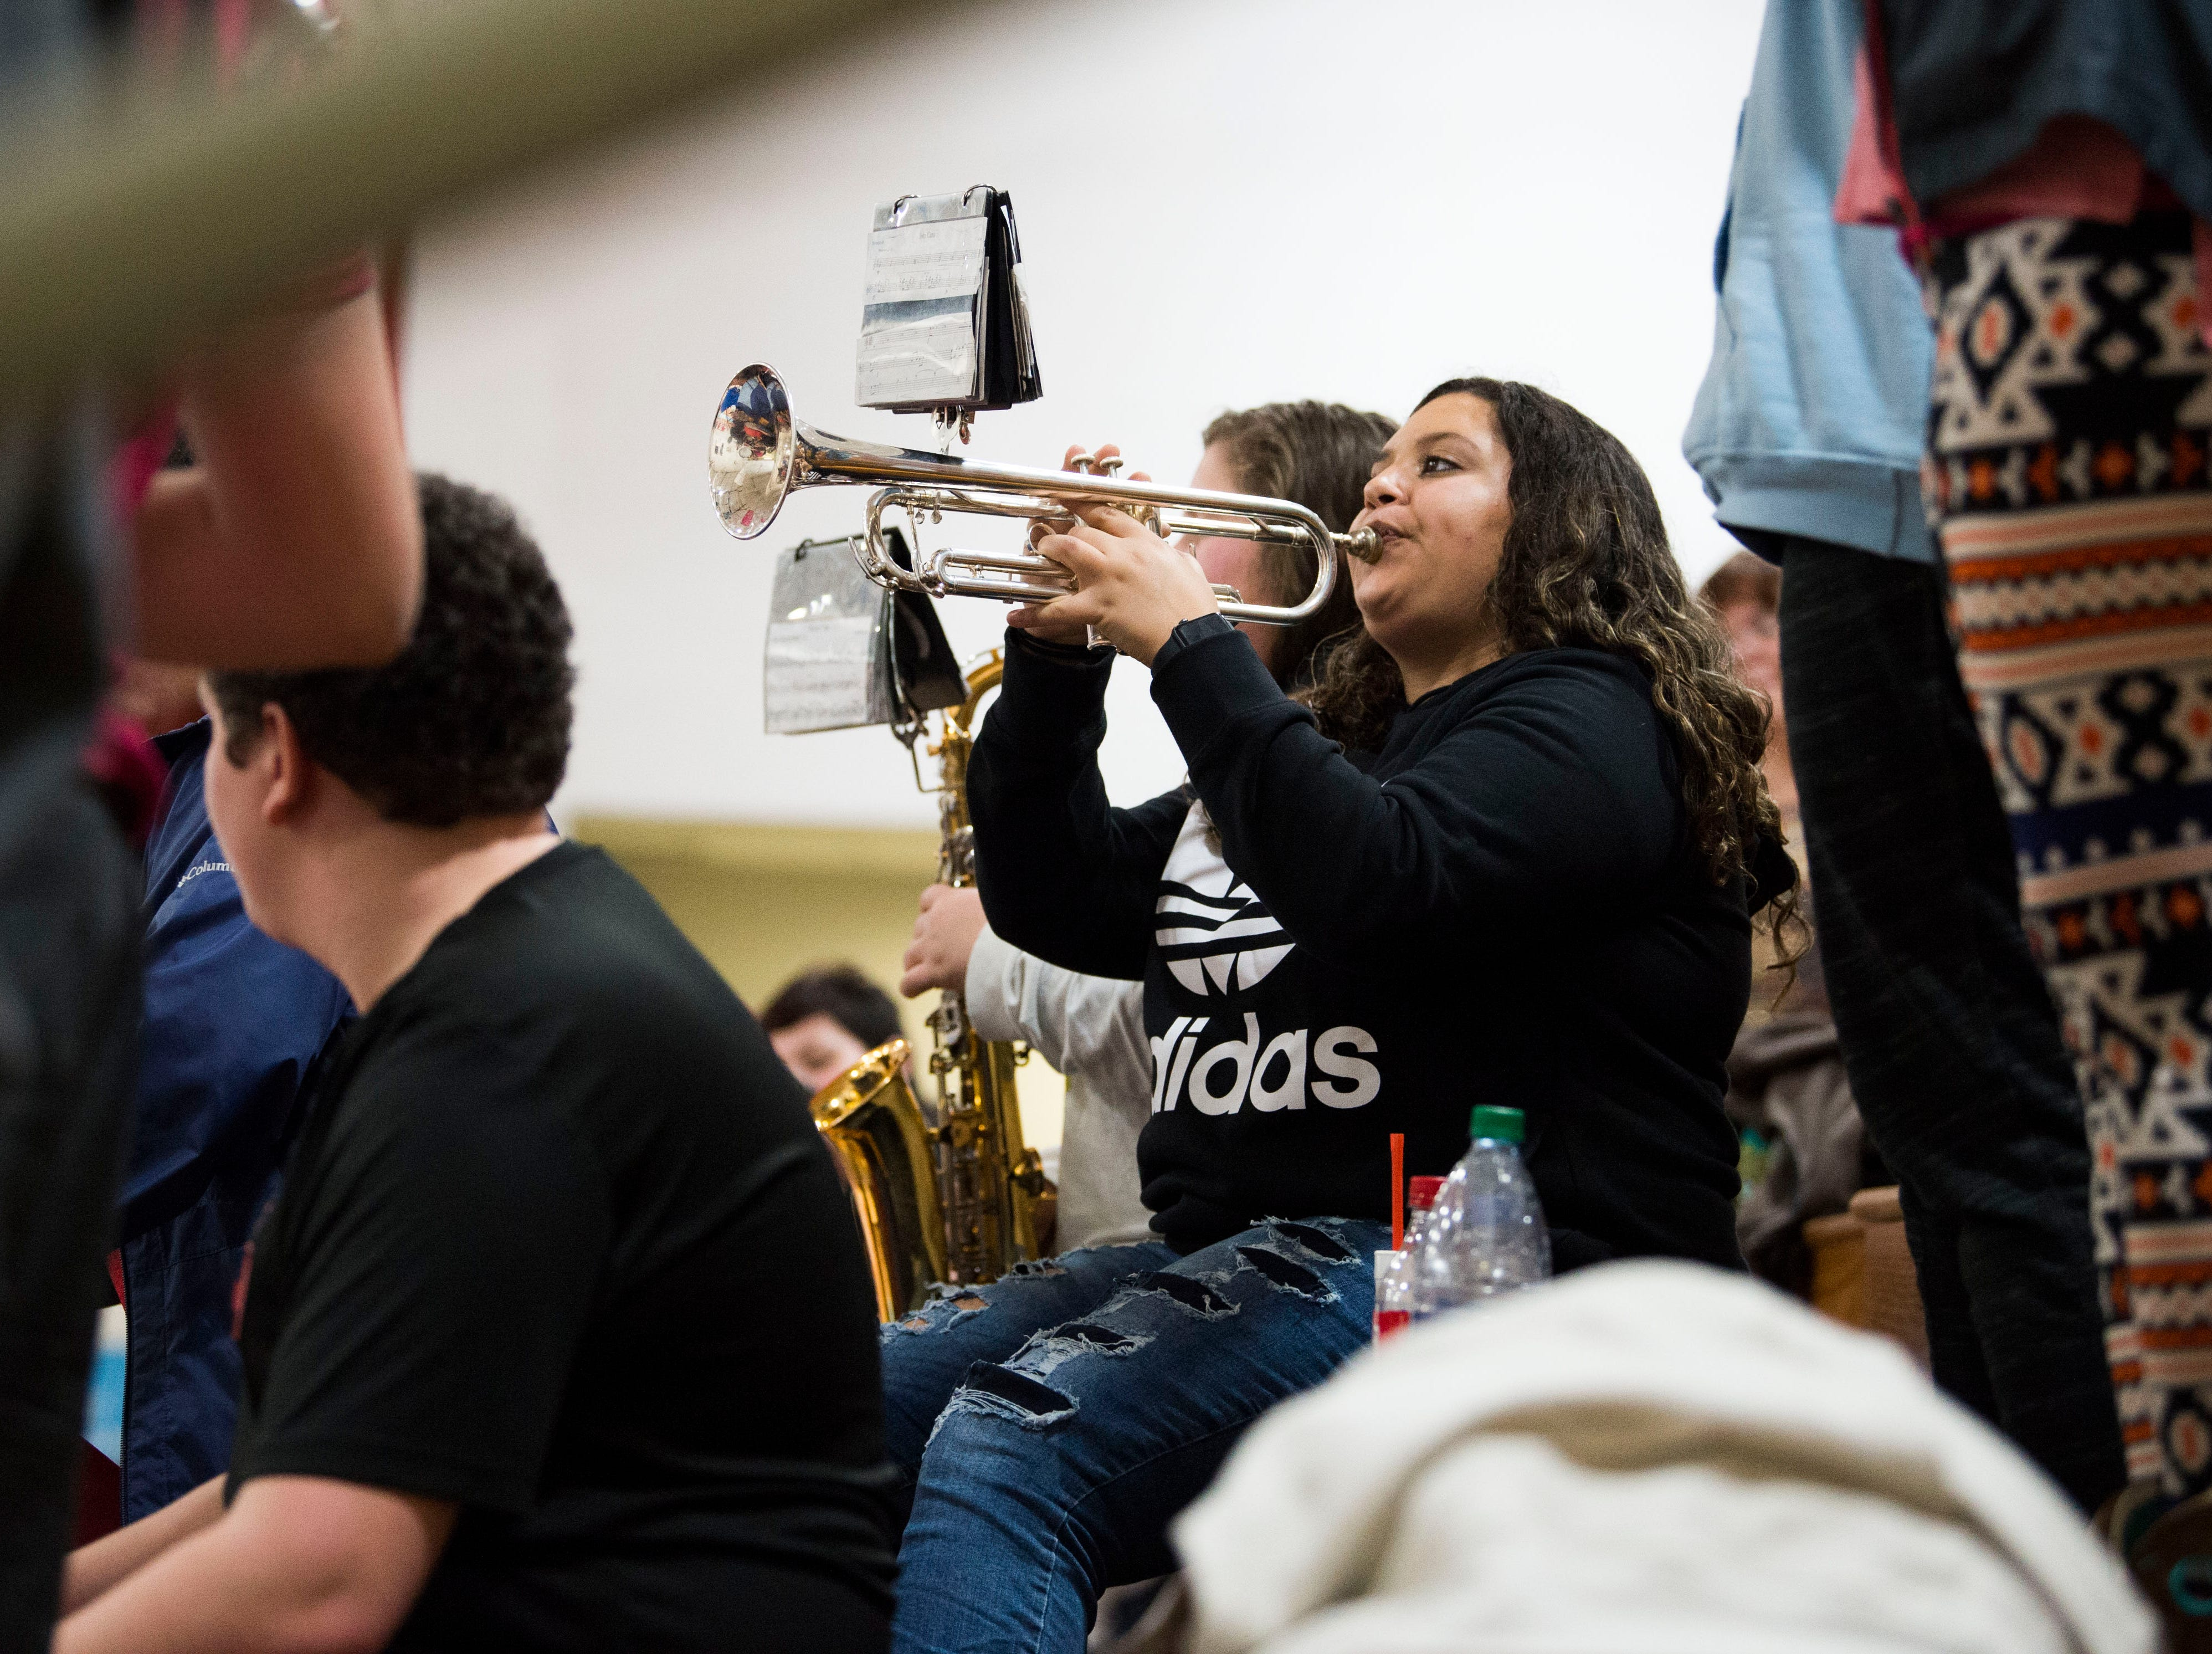 A member of the Heritage band plays during a high school basketball game between Maryville and Heritage at Heritage Friday, Jan. 4, 2019. Both Maryville boys and girls teams beat Heritage.